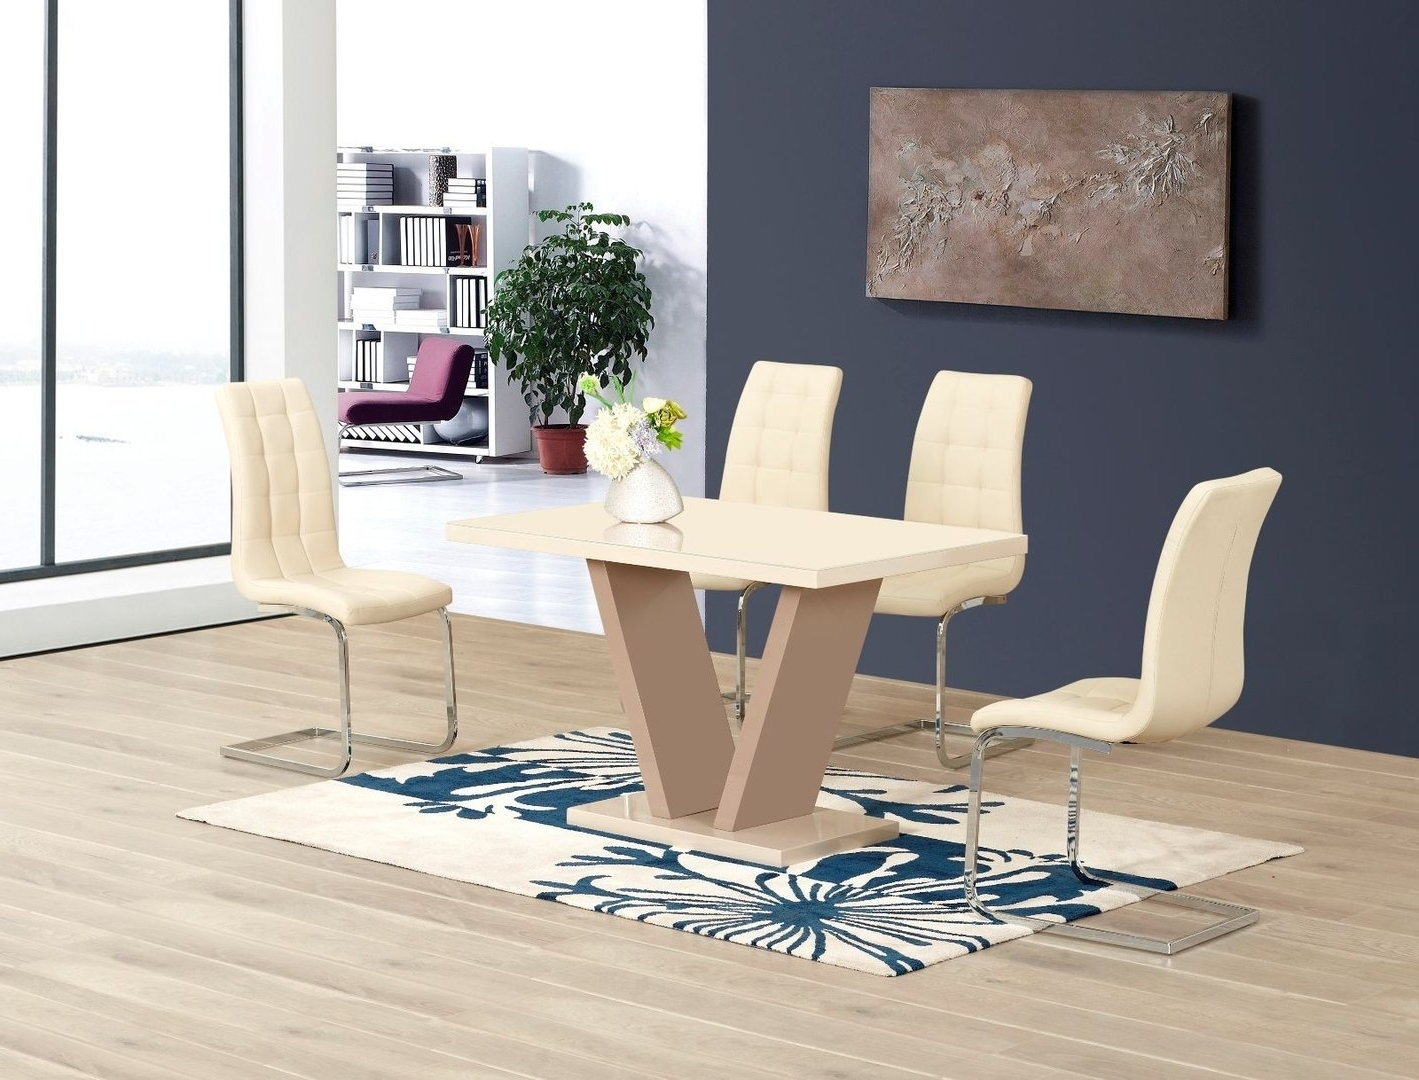 Widely Used White High Gloss Dining Tables And Chairs With Regard To Cream High Gloss Glass Dining Table And 6 Chairs – Homegenies (View 14 of 25)